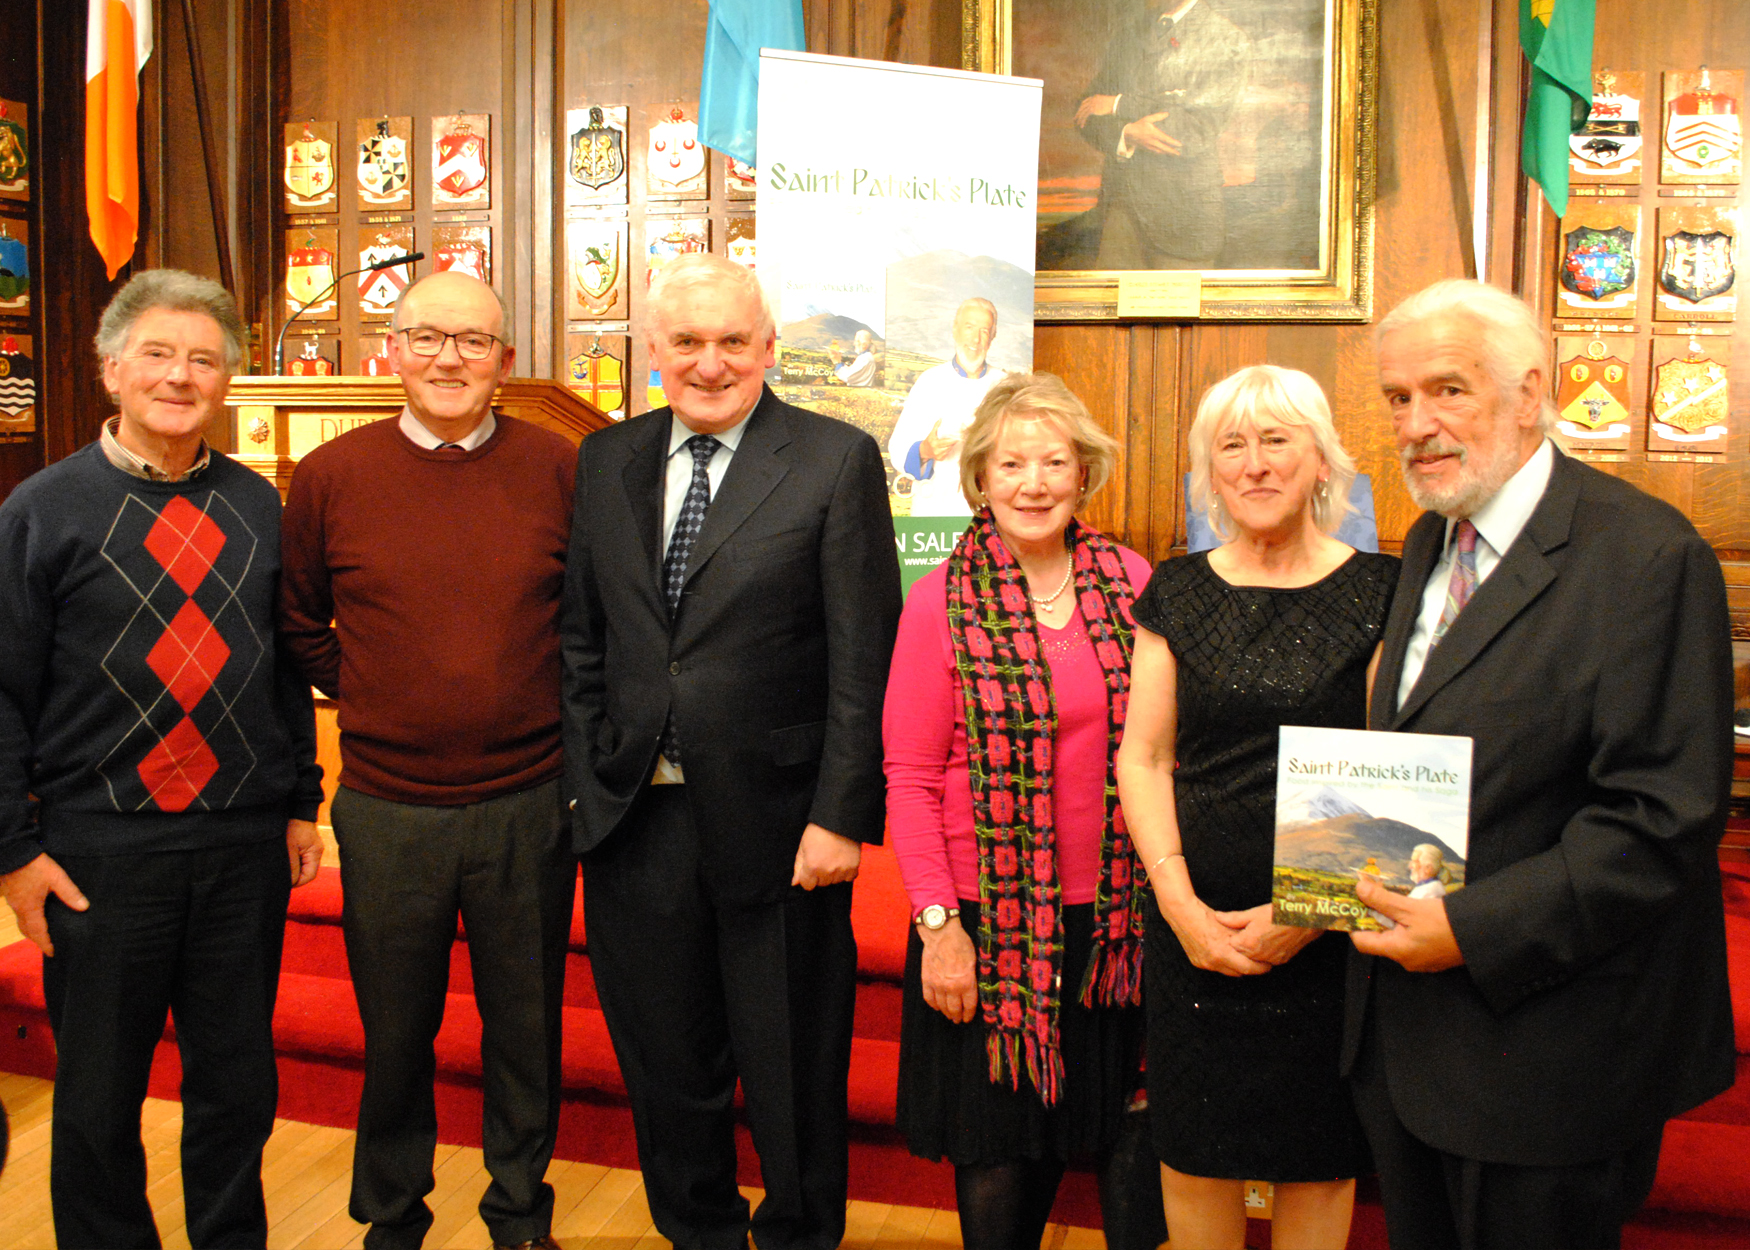 Saint Patrick's Plate - Book Launch - The Mansion House